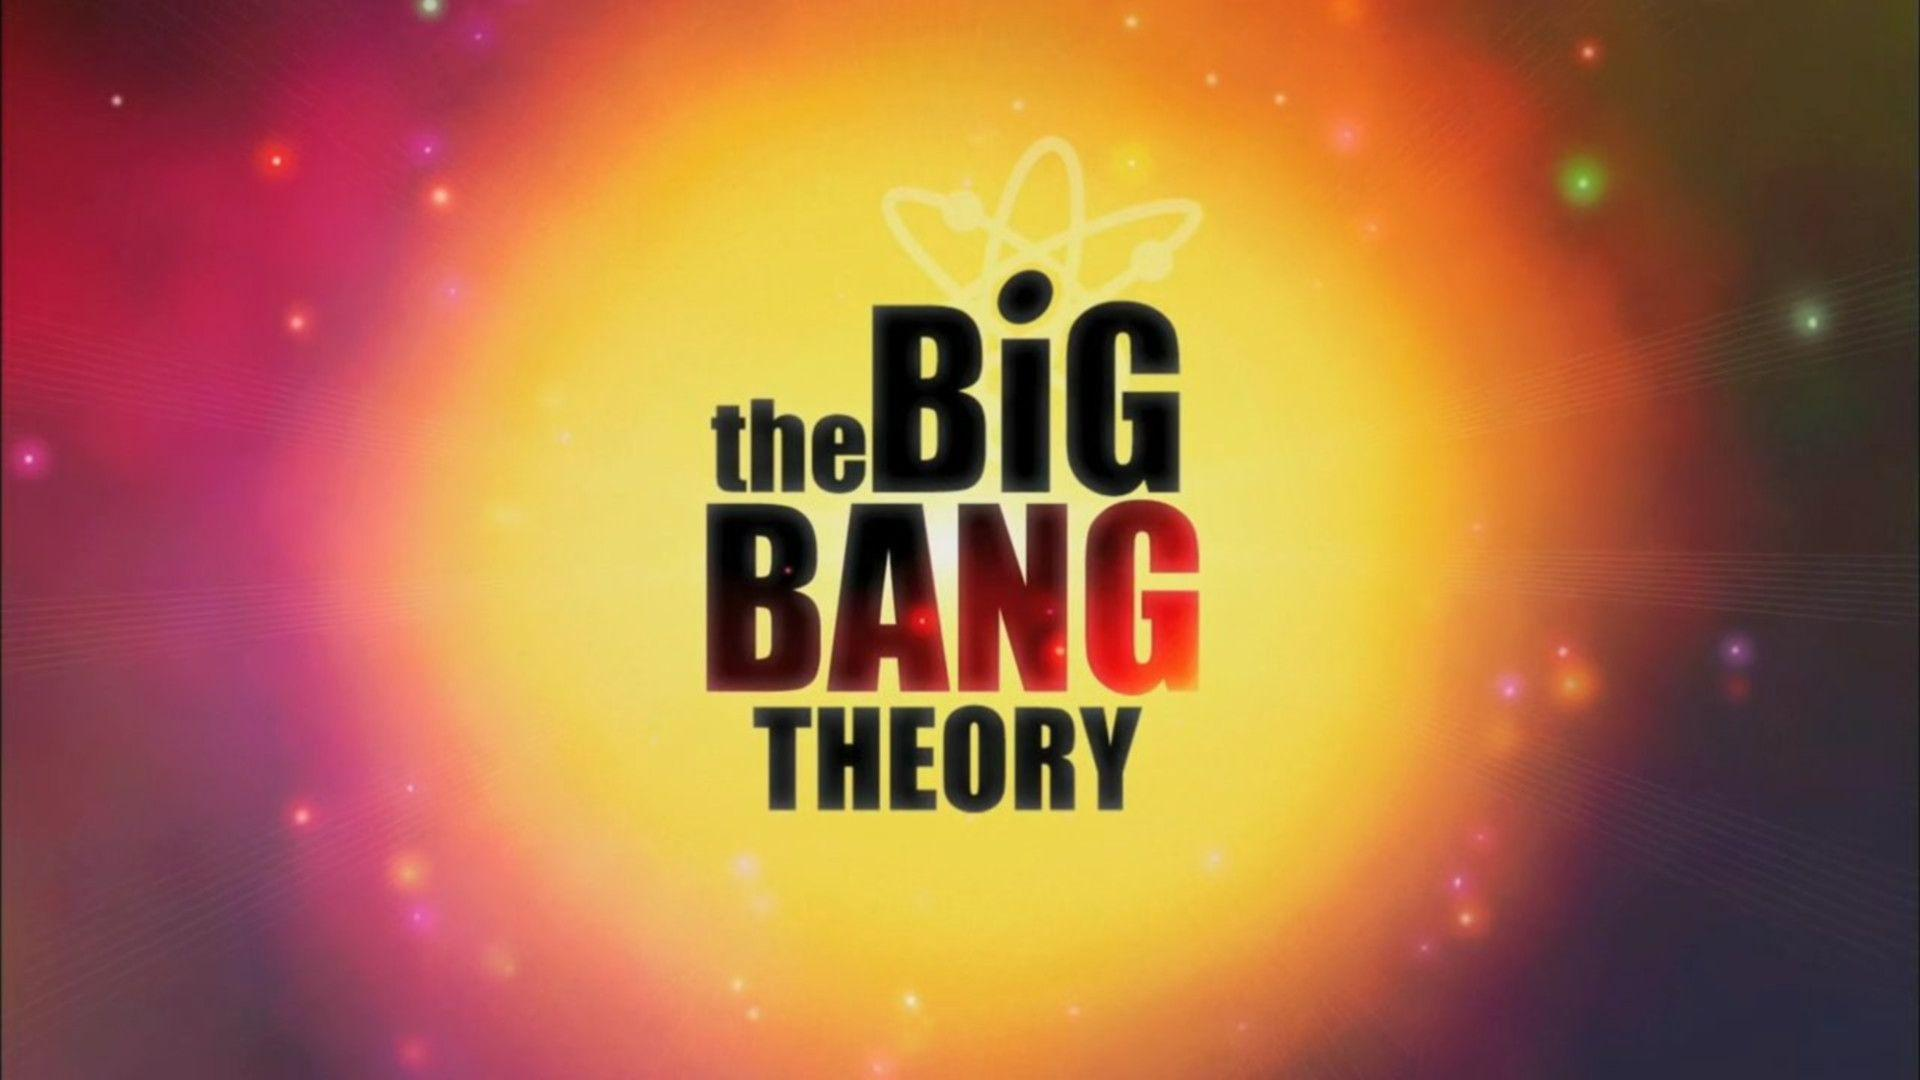 the big bang theory wallpapers wallpaper cave. Black Bedroom Furniture Sets. Home Design Ideas